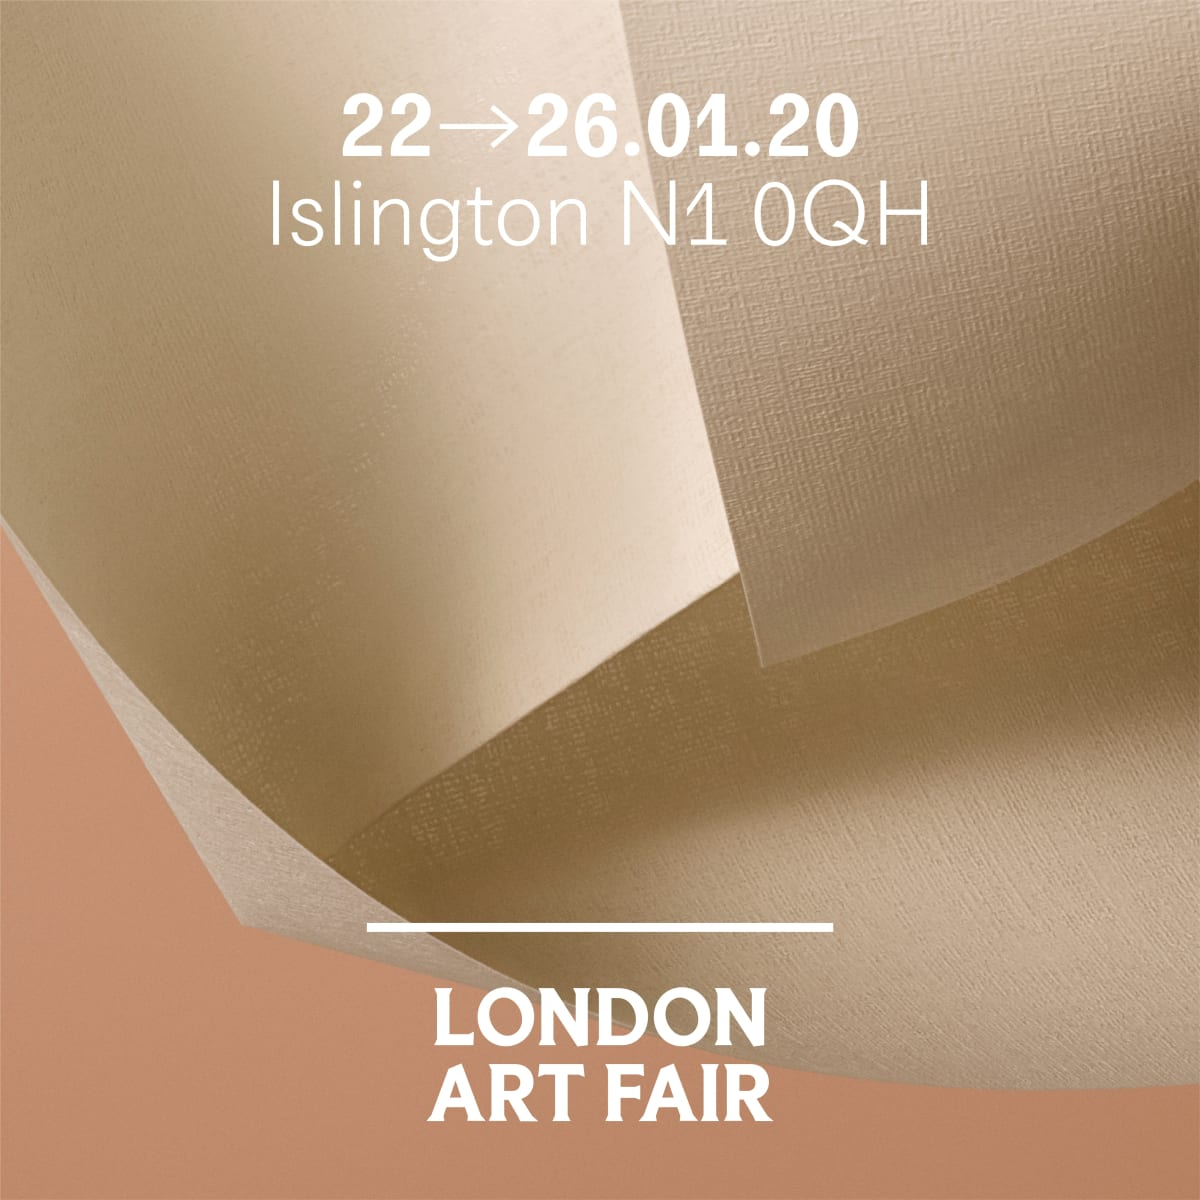 London Art Fair 2020, Islington